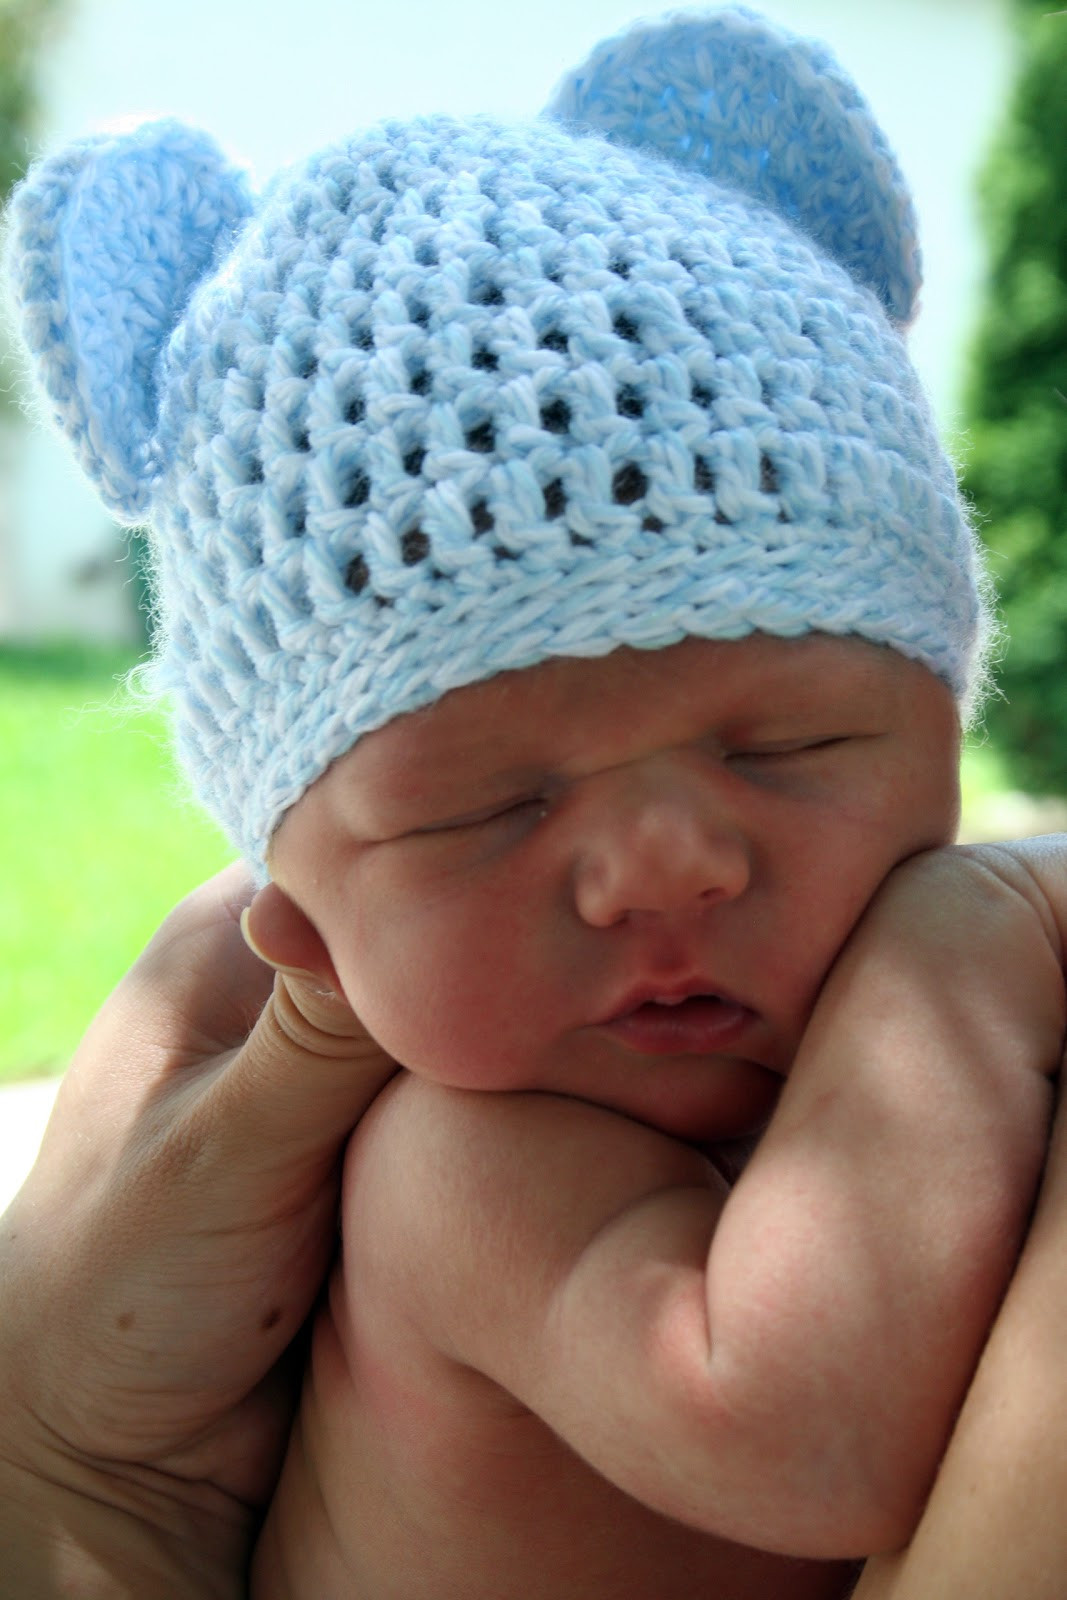 Inspirational Tampa Bay Crochet Crochet Newborn Bear Hat Free Crochet Patterns for Newborns Of Unique 40 Photos Free Crochet Patterns for Newborns